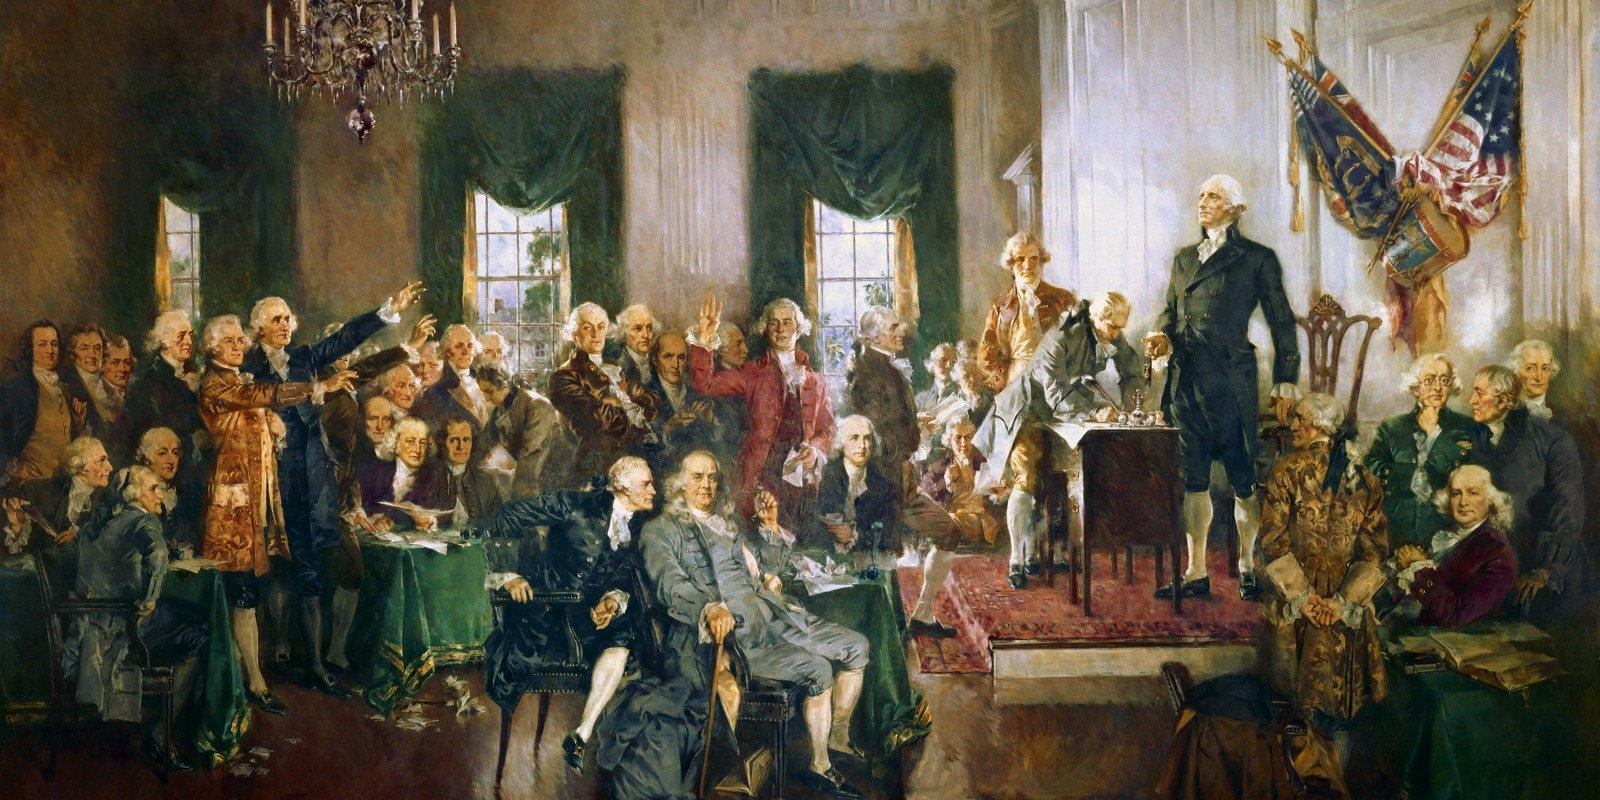 Scene_at_the_Signing_of_the_Constitution_of_the_United_States-1600x800